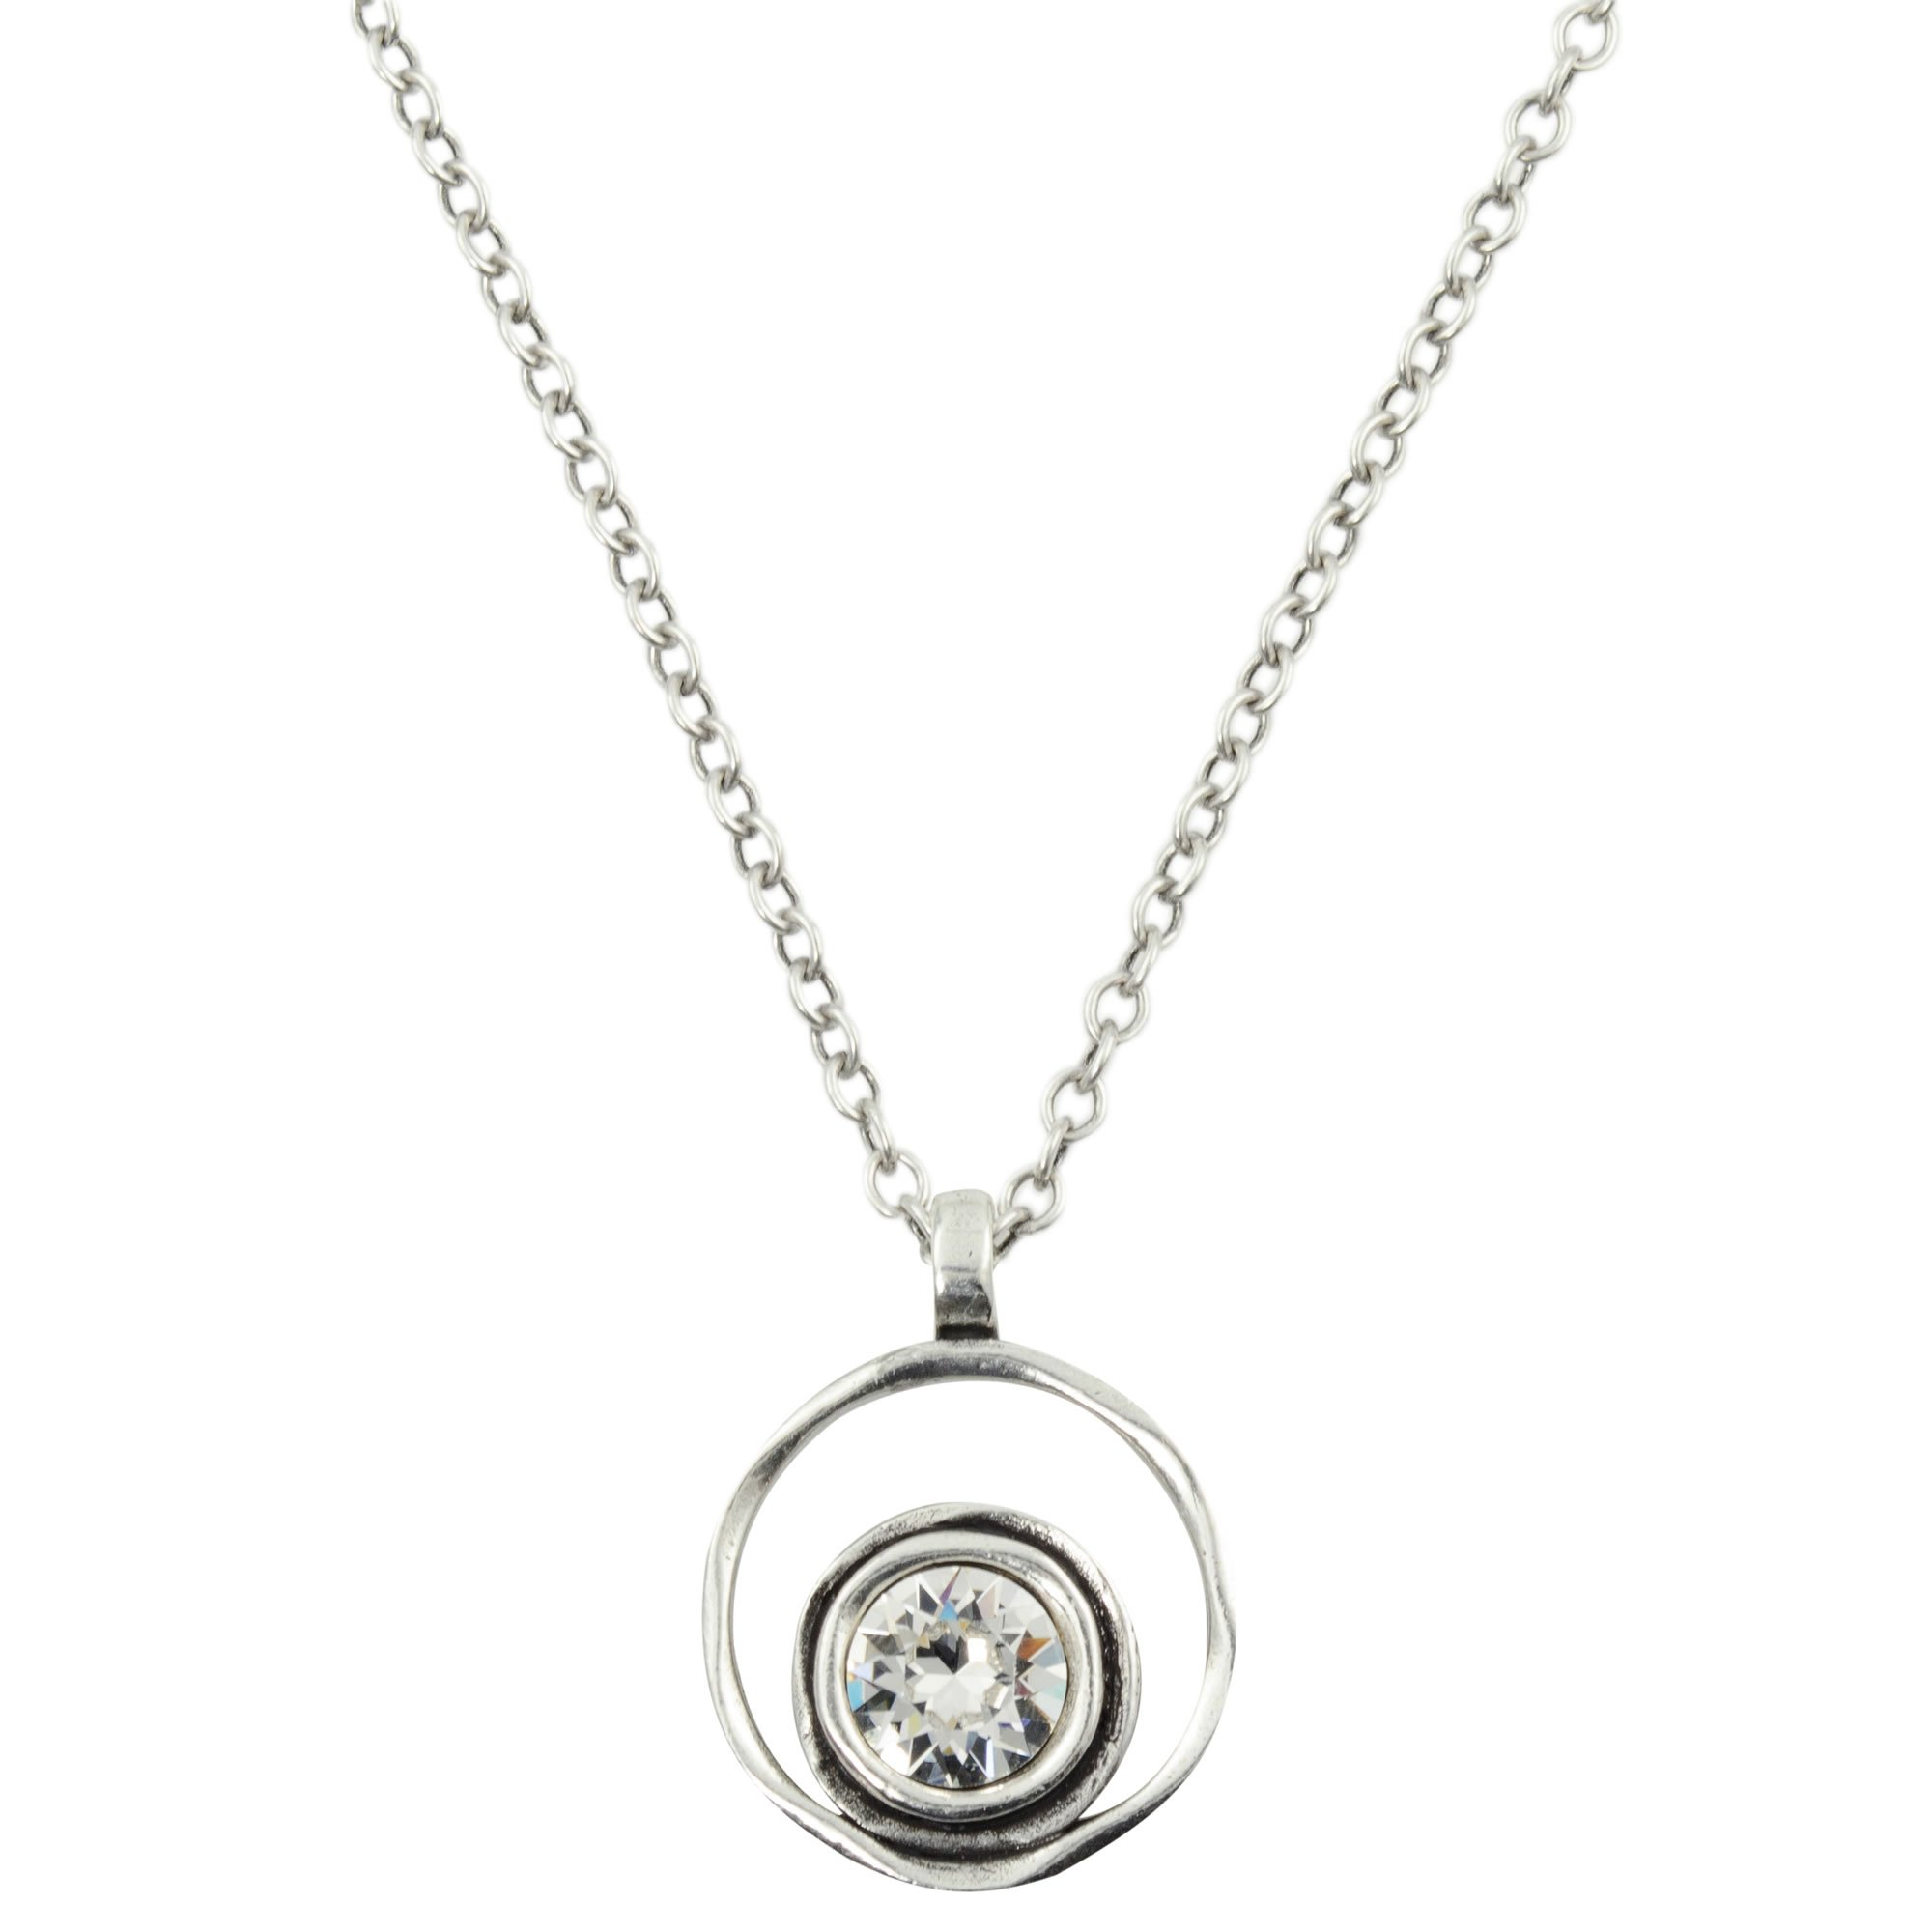 Patricia Locke Serenity Necklace in Silver, Crystal Color Story